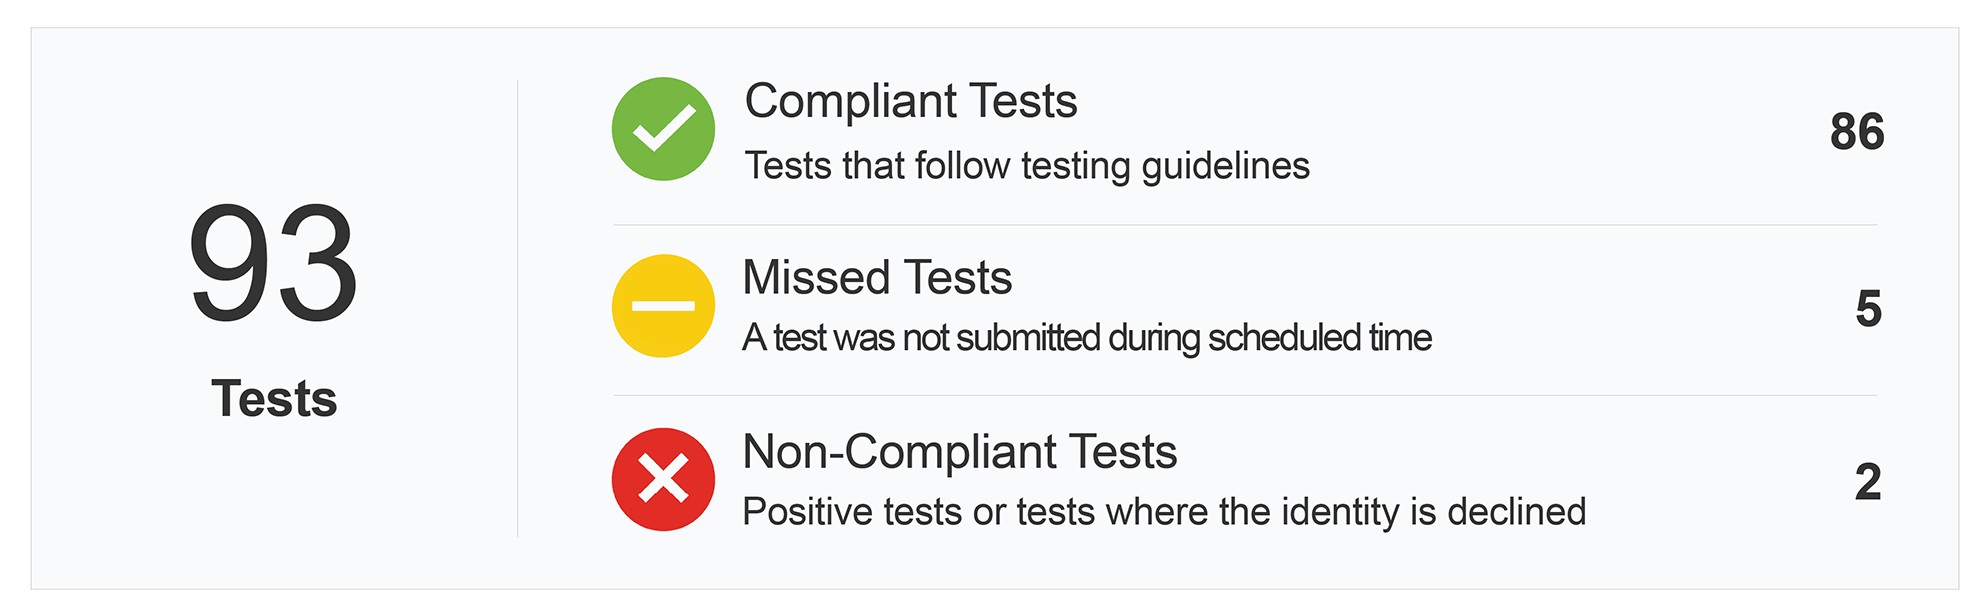 93 Compliant Tests with Soberlink